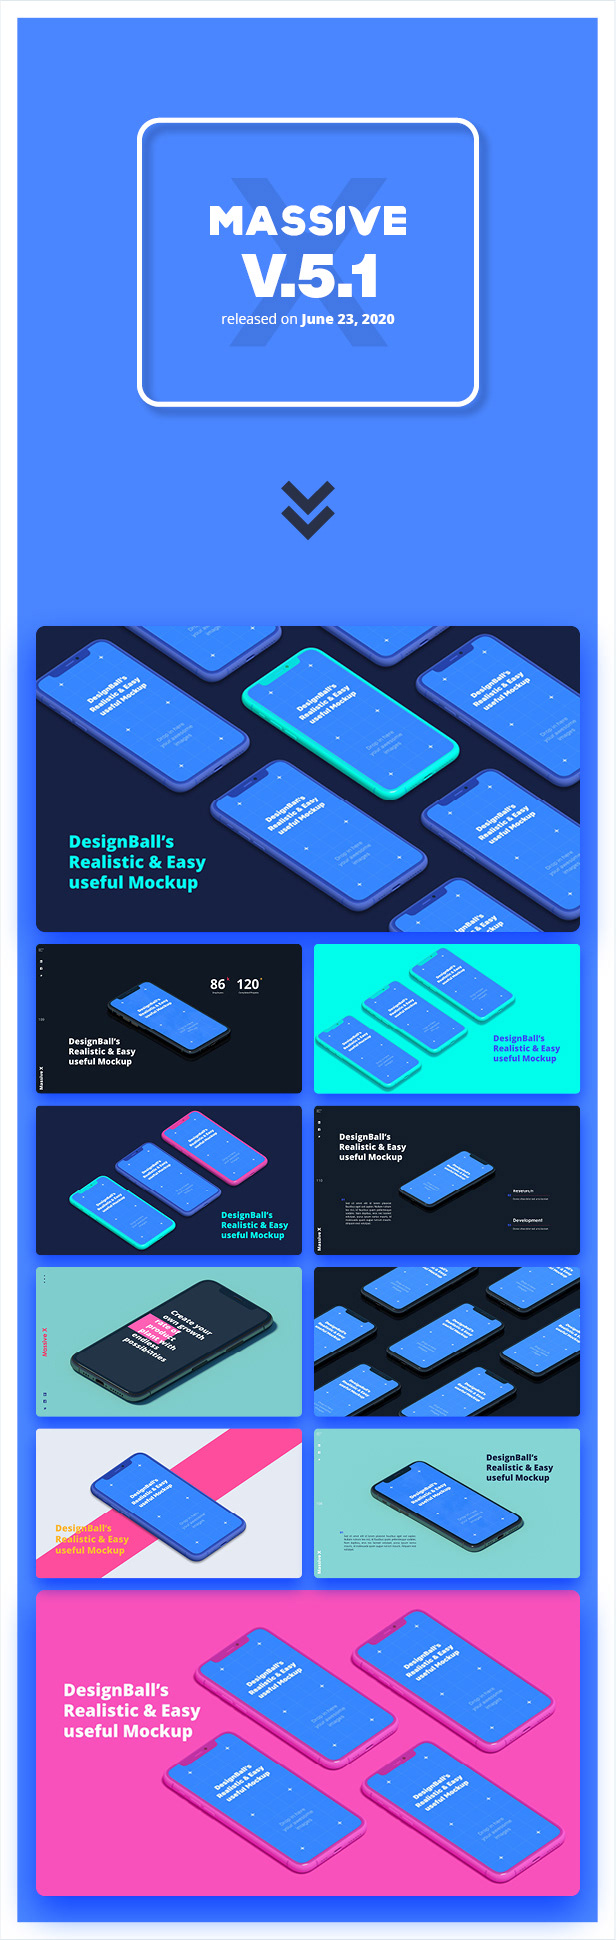 Massive X Presentation Template v.5.2 Fully Animated - 11